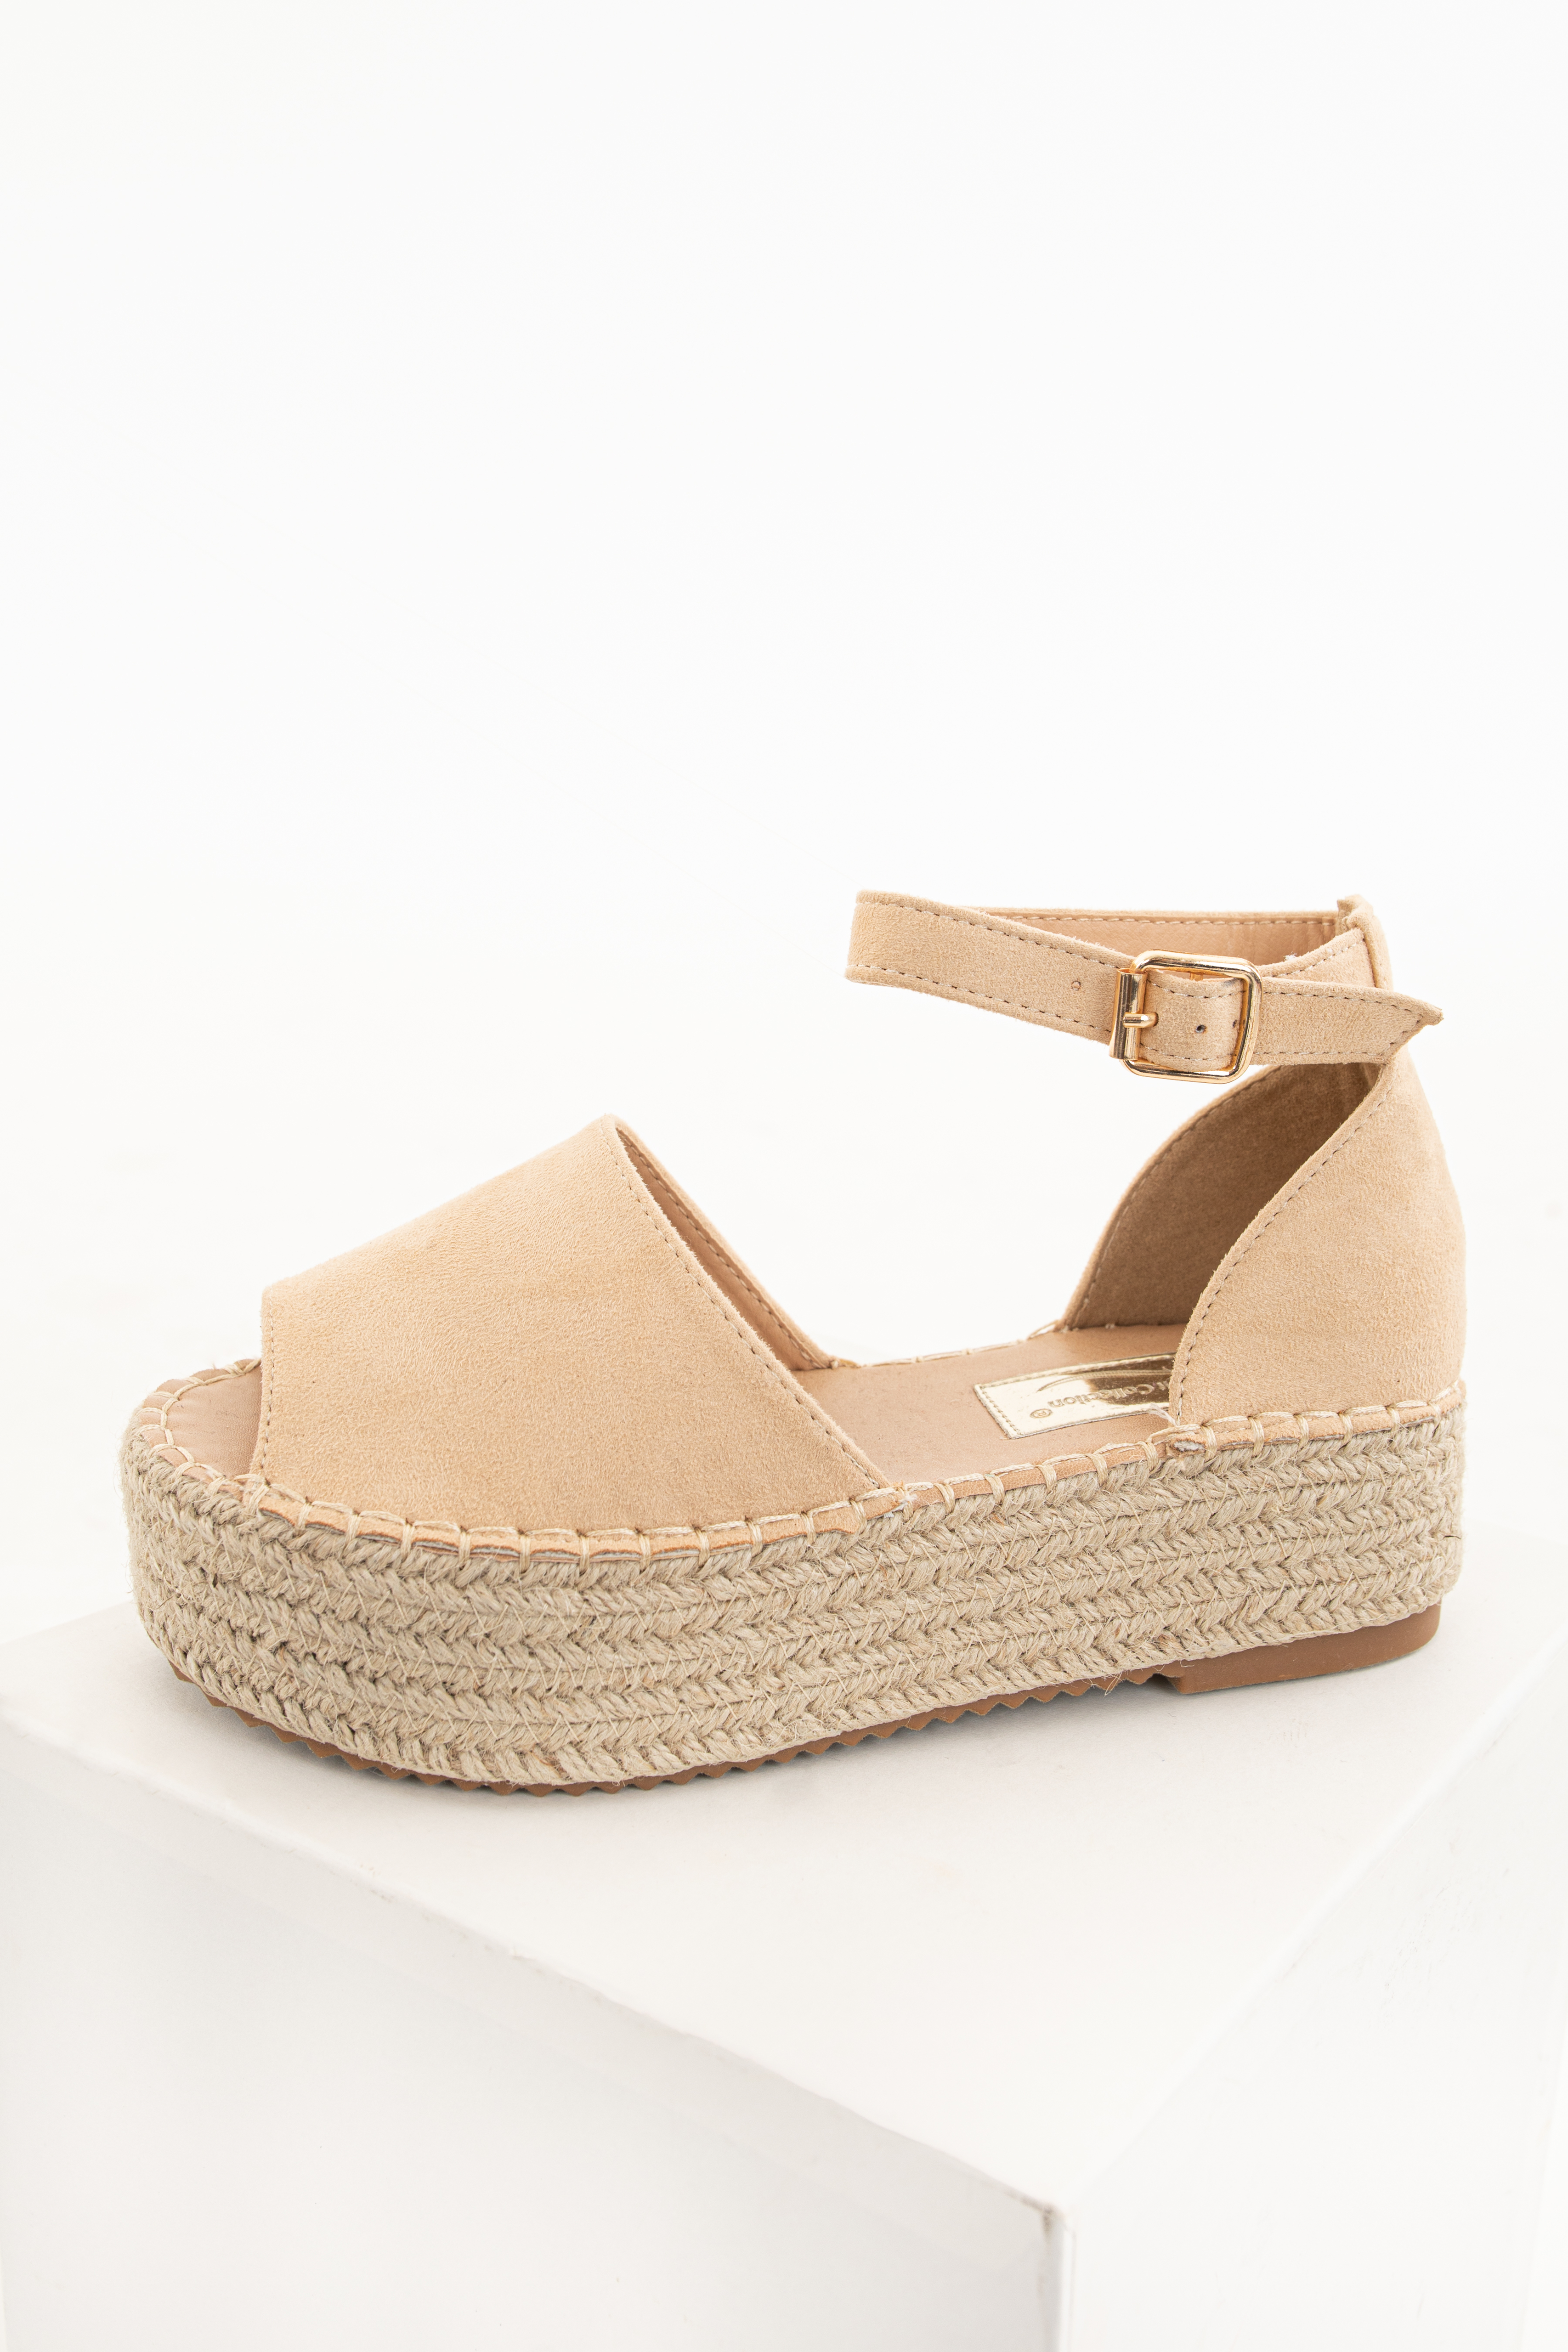 Nude Espadrille Open Toe Sandals with Ankle Strap